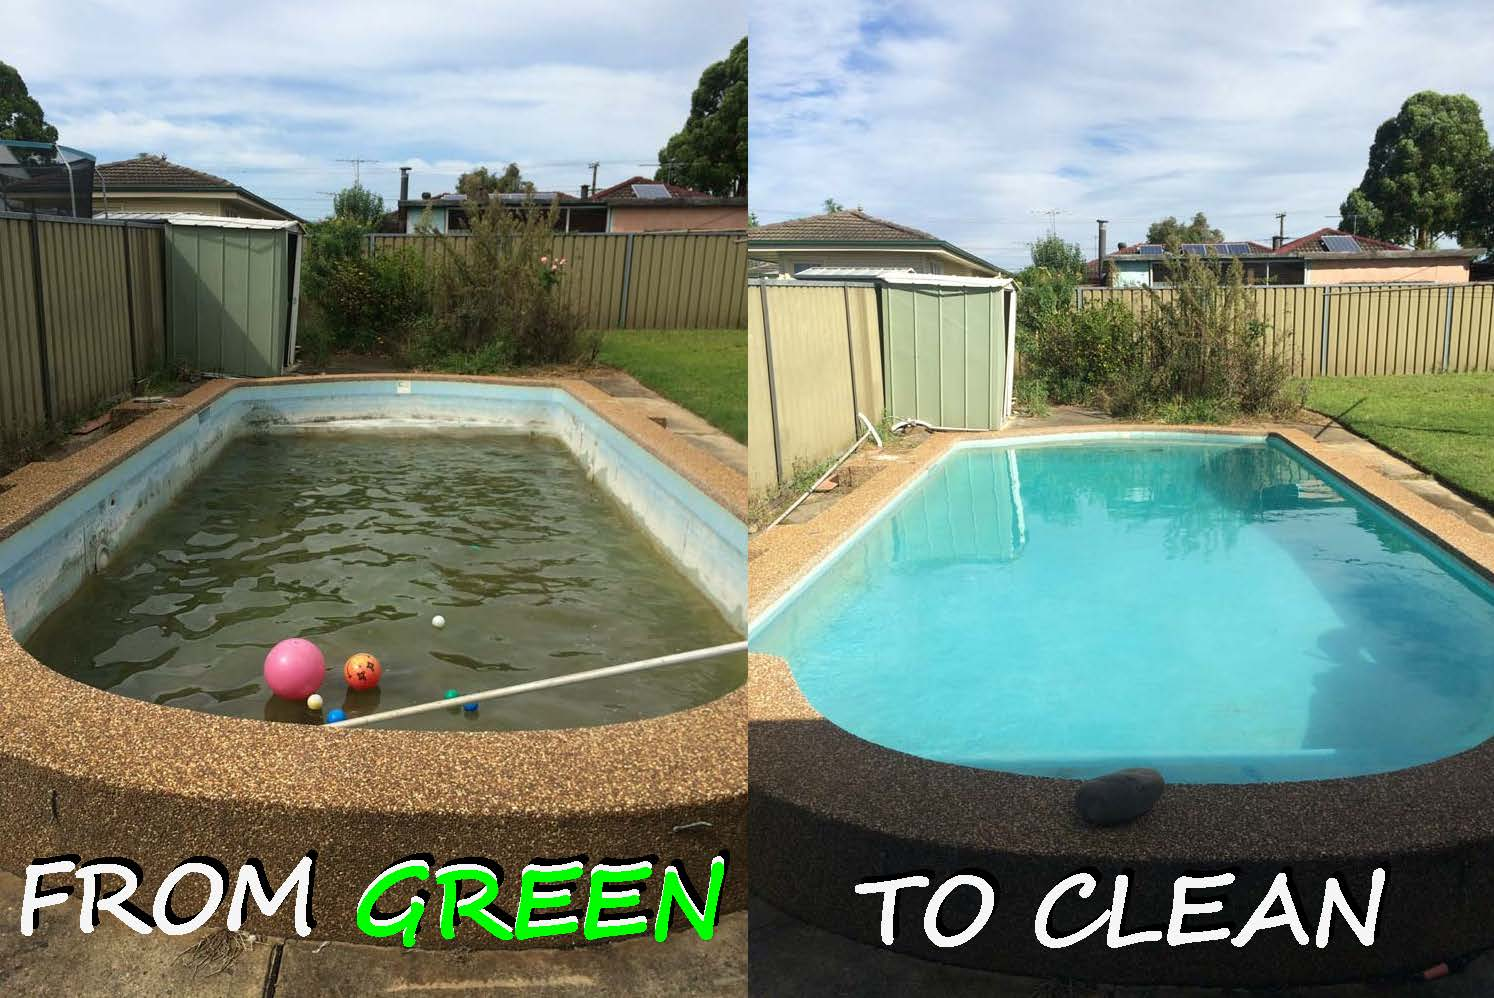 How to clean a neglected green swimming pool clean pools - Pool shock how long before swimming ...